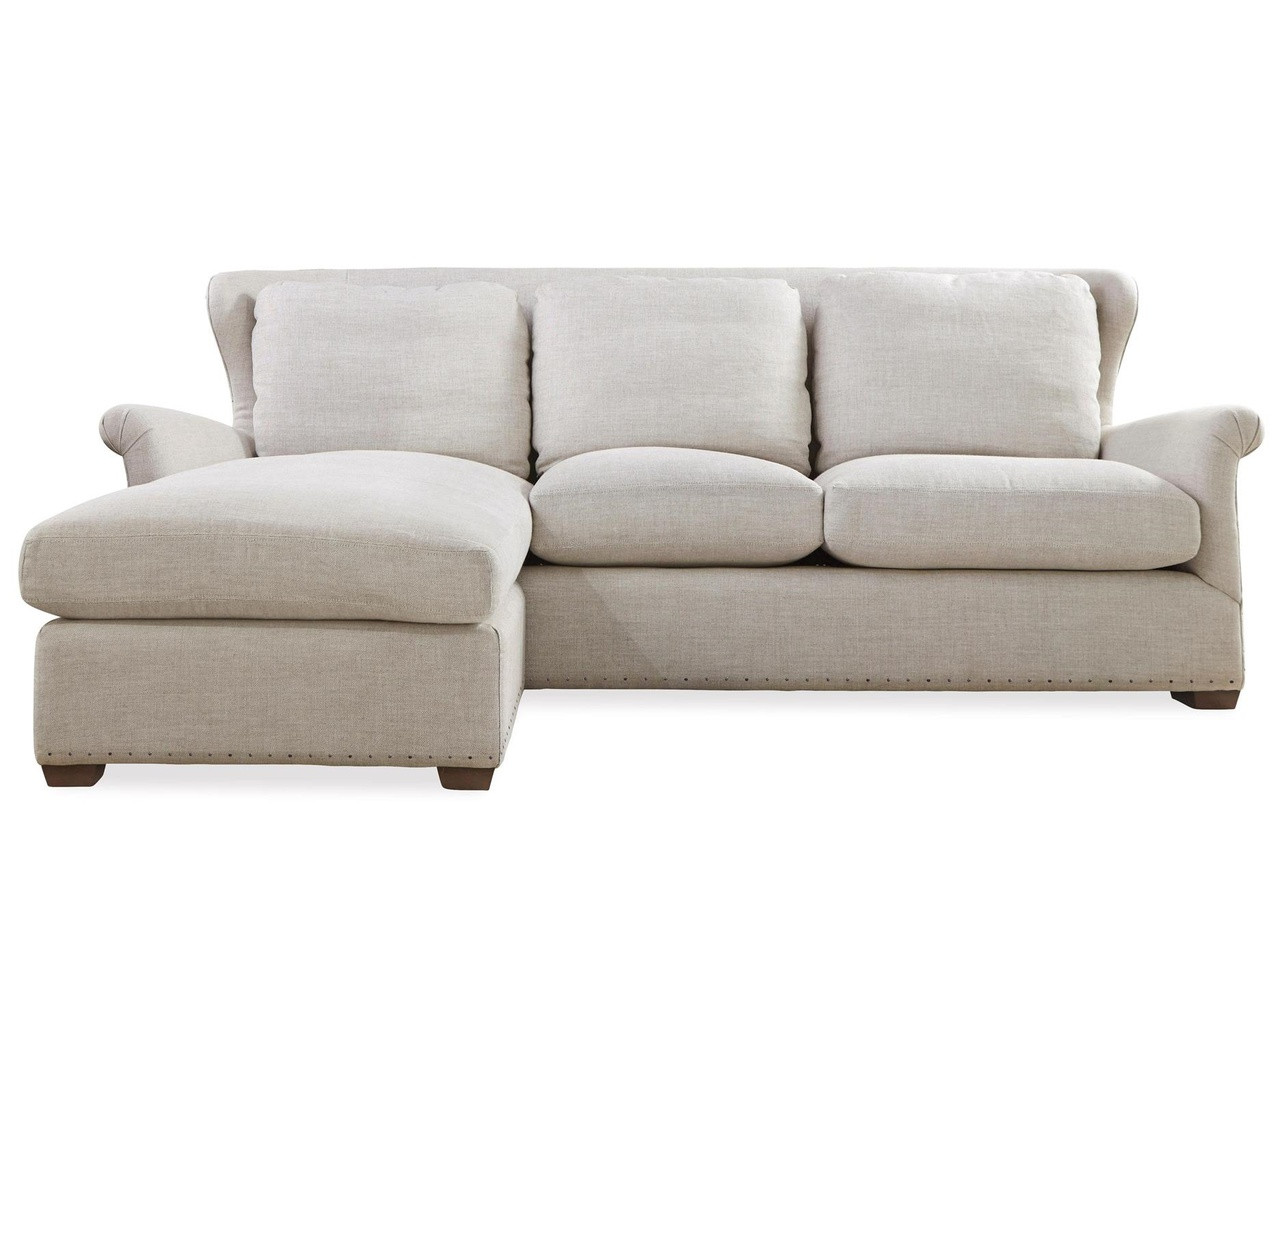 Haven belgian linen upholstered wingback sectional sofa zin home haven belgian linen upholstered wingback sectional sofa parisarafo Gallery